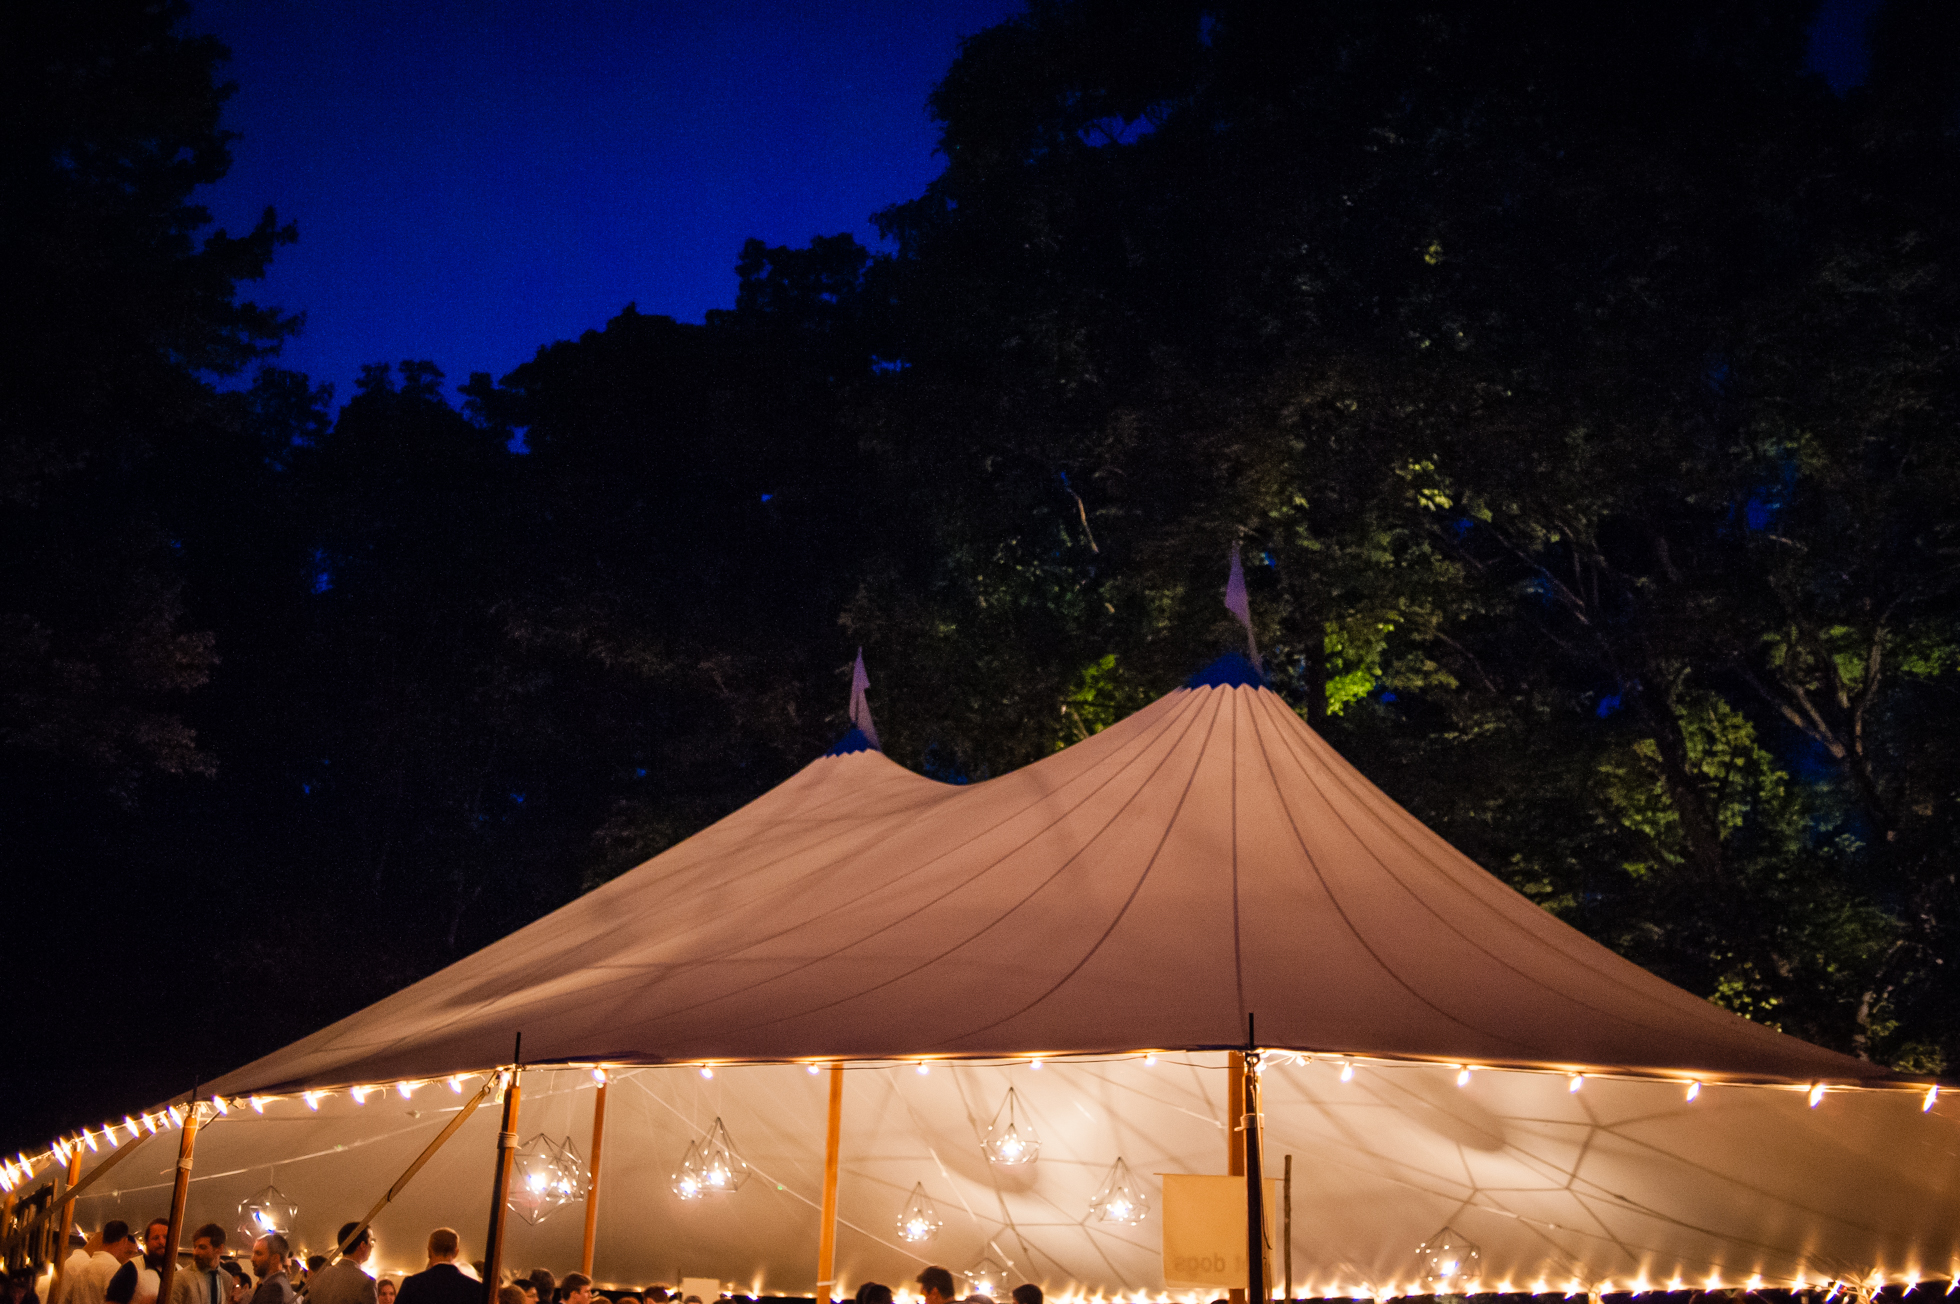 gorgeous sailcloth tent lit up at night